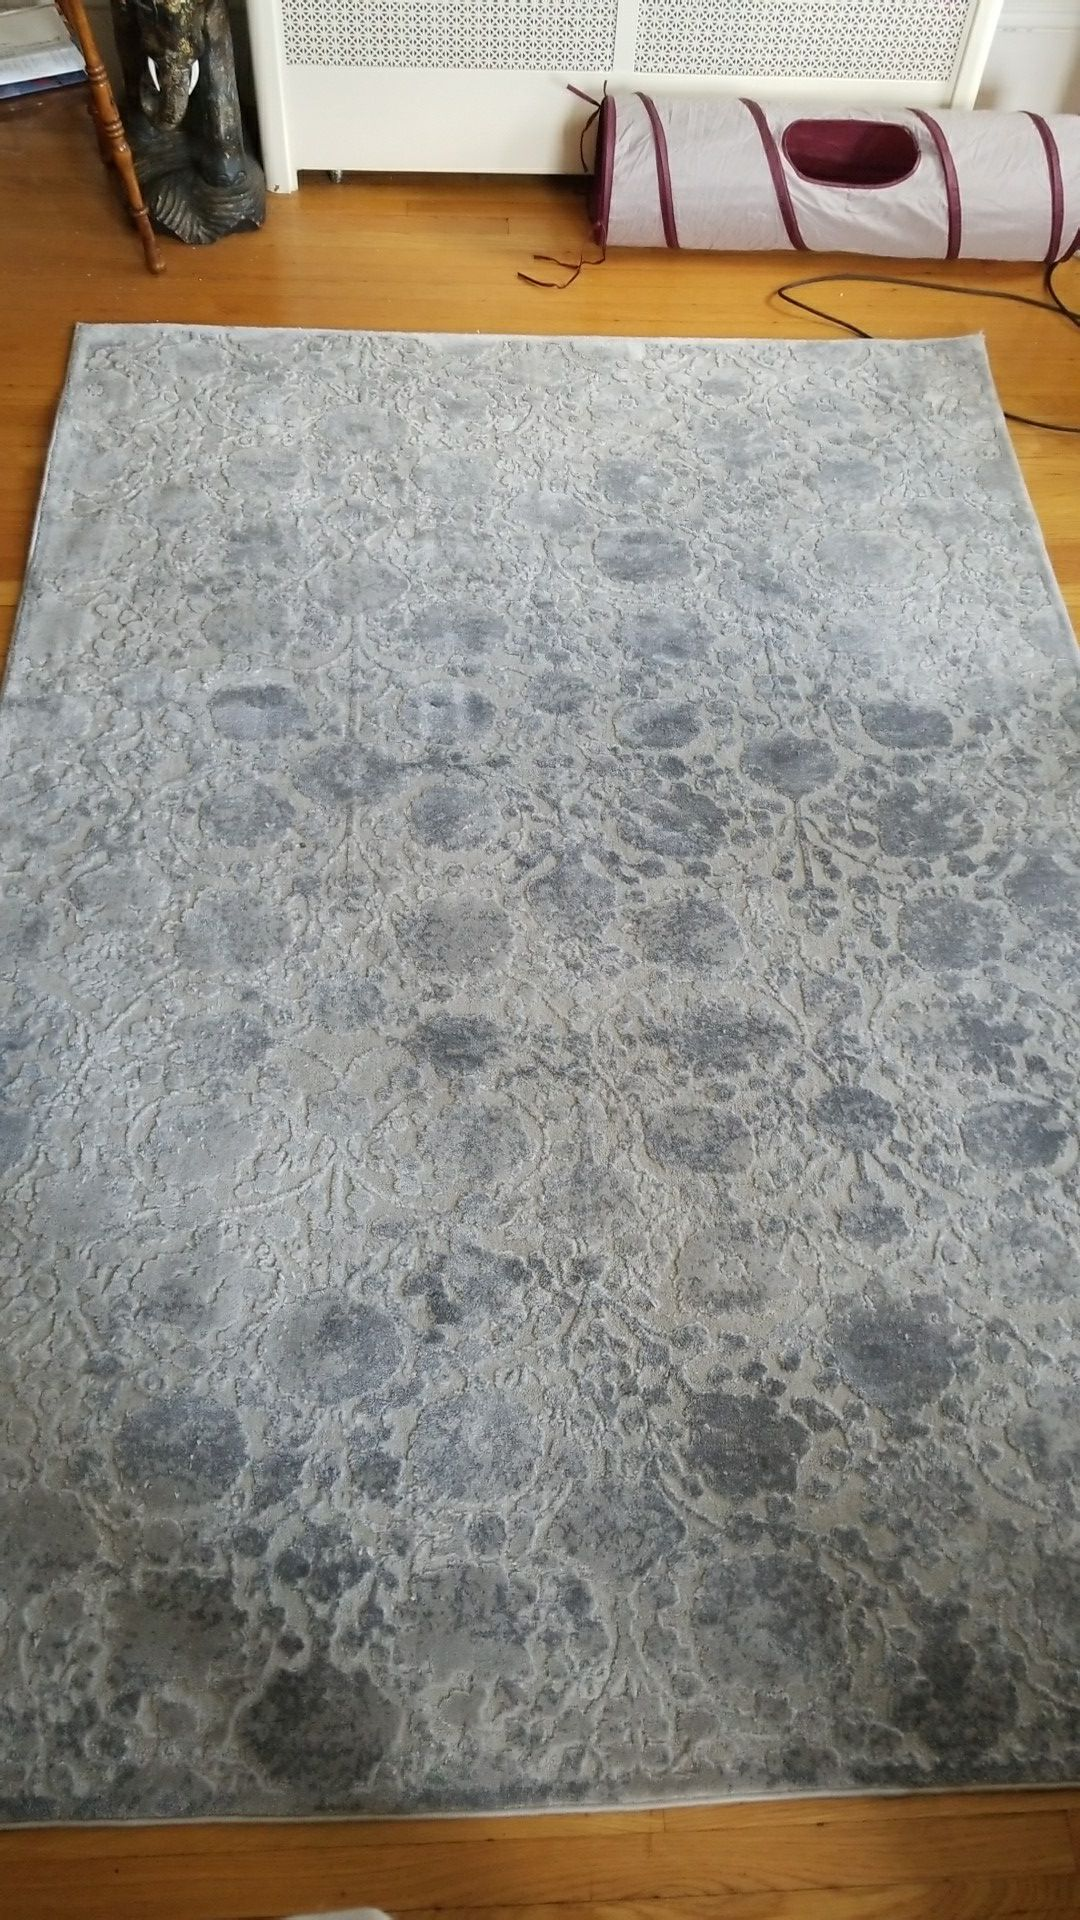 Grey/silver textured/patterned area rug (5x7)